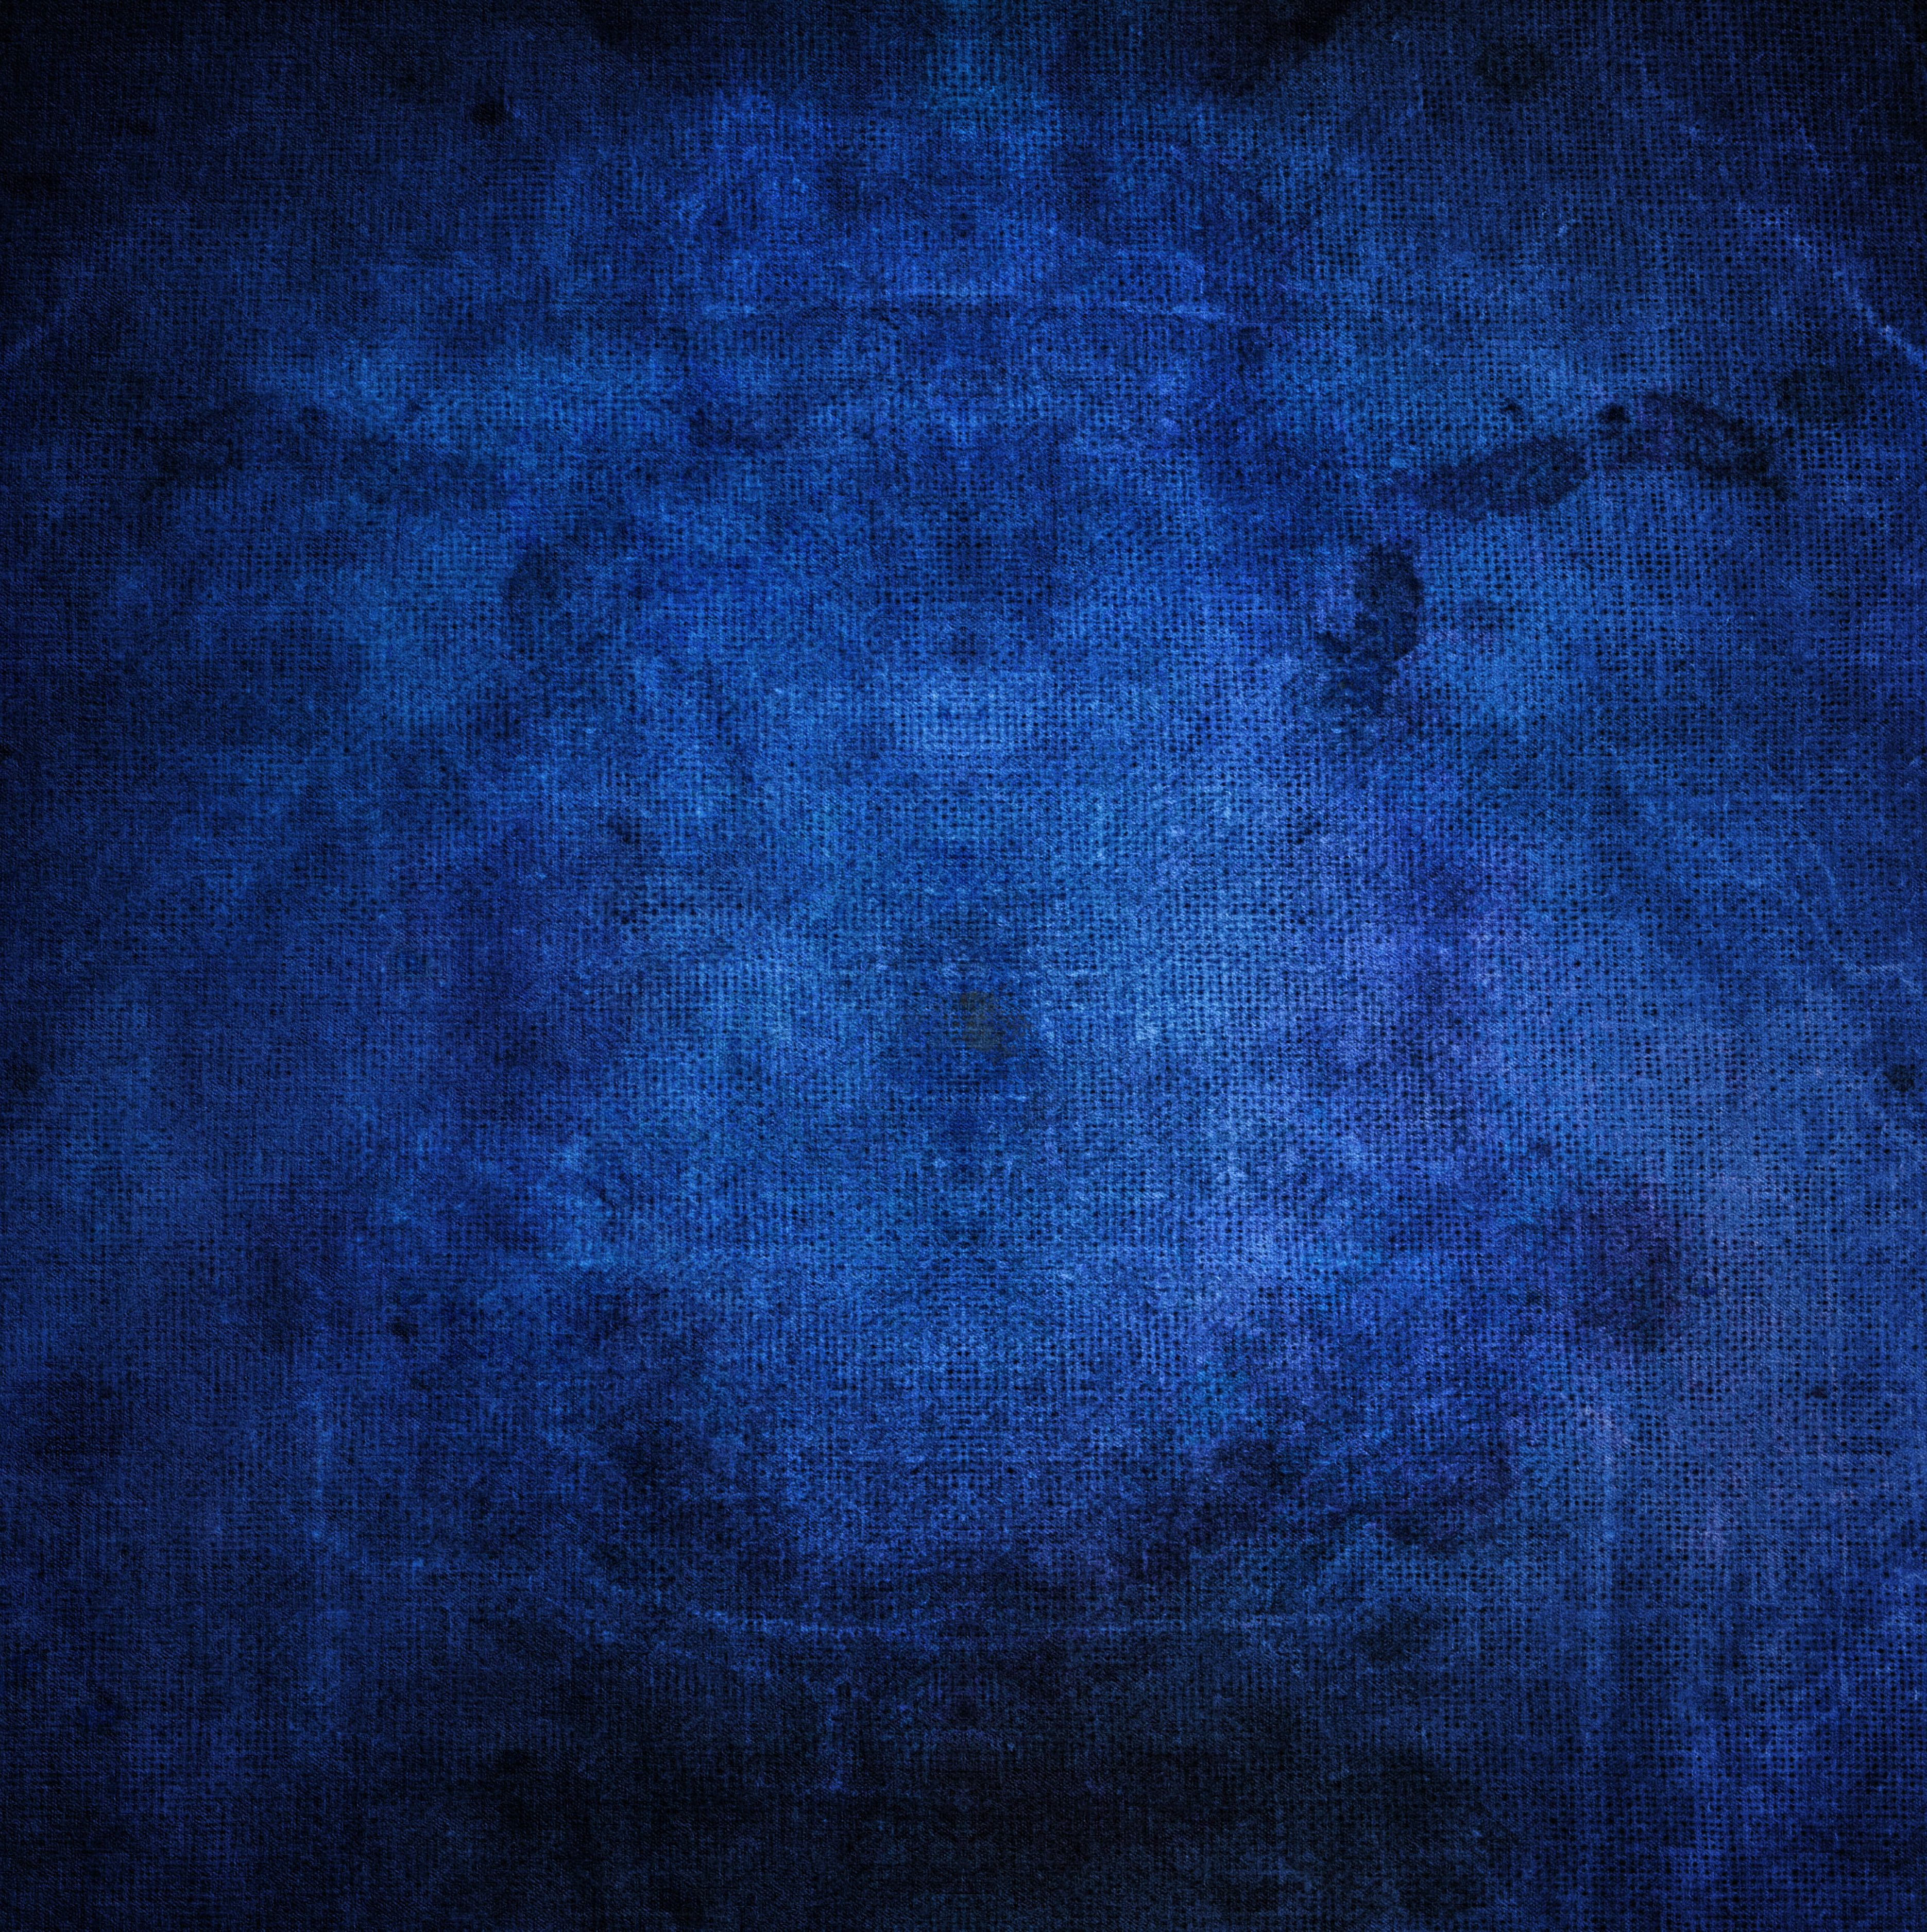 deep blue abstract grunge texture | www.myfreetextures.com | 1500+ Free Textures, Stock Photos & Background Images